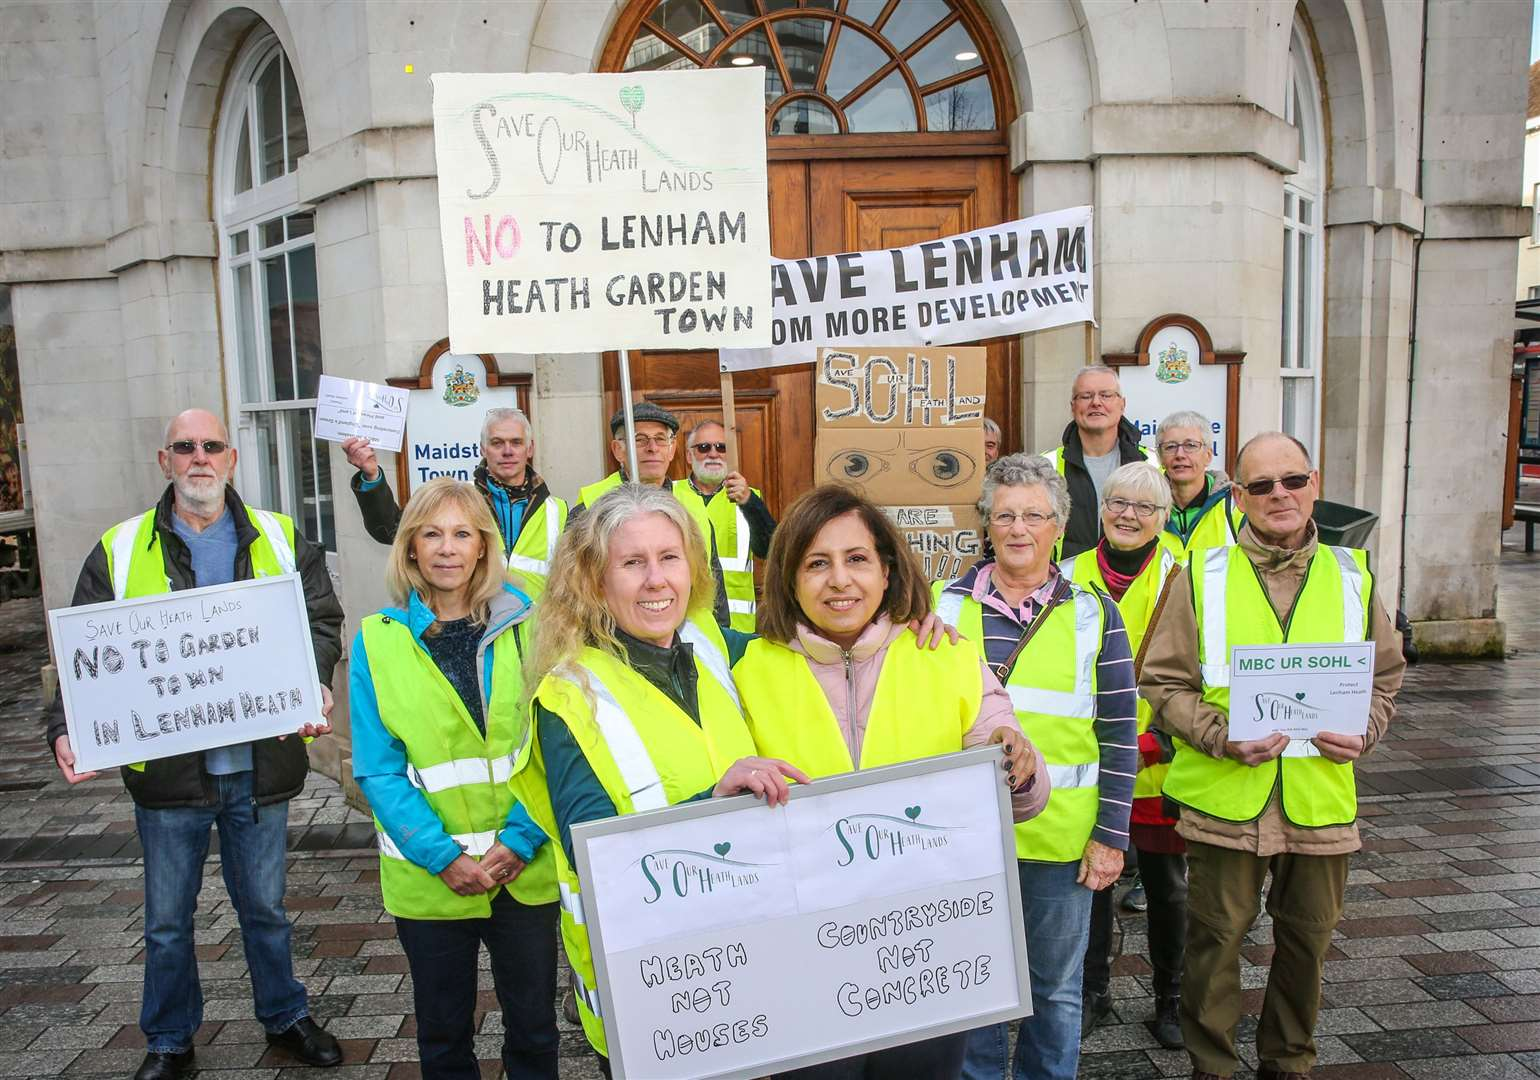 A march against proposals to build a 5,000 home development near Lenham Picture: Matthew Walker